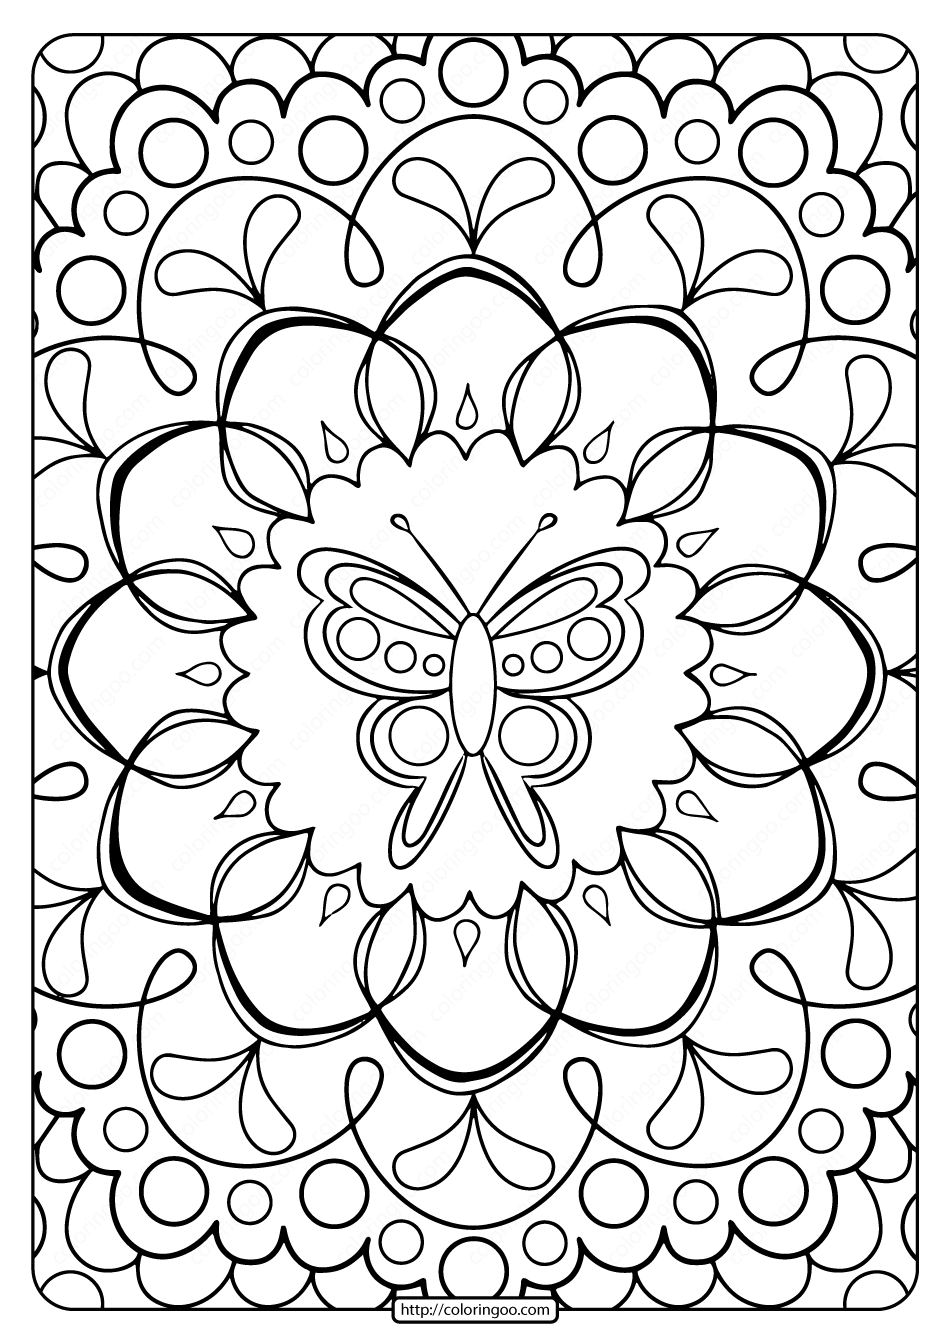 coloring printable free disney coloring pages to download and print for free printable coloring free